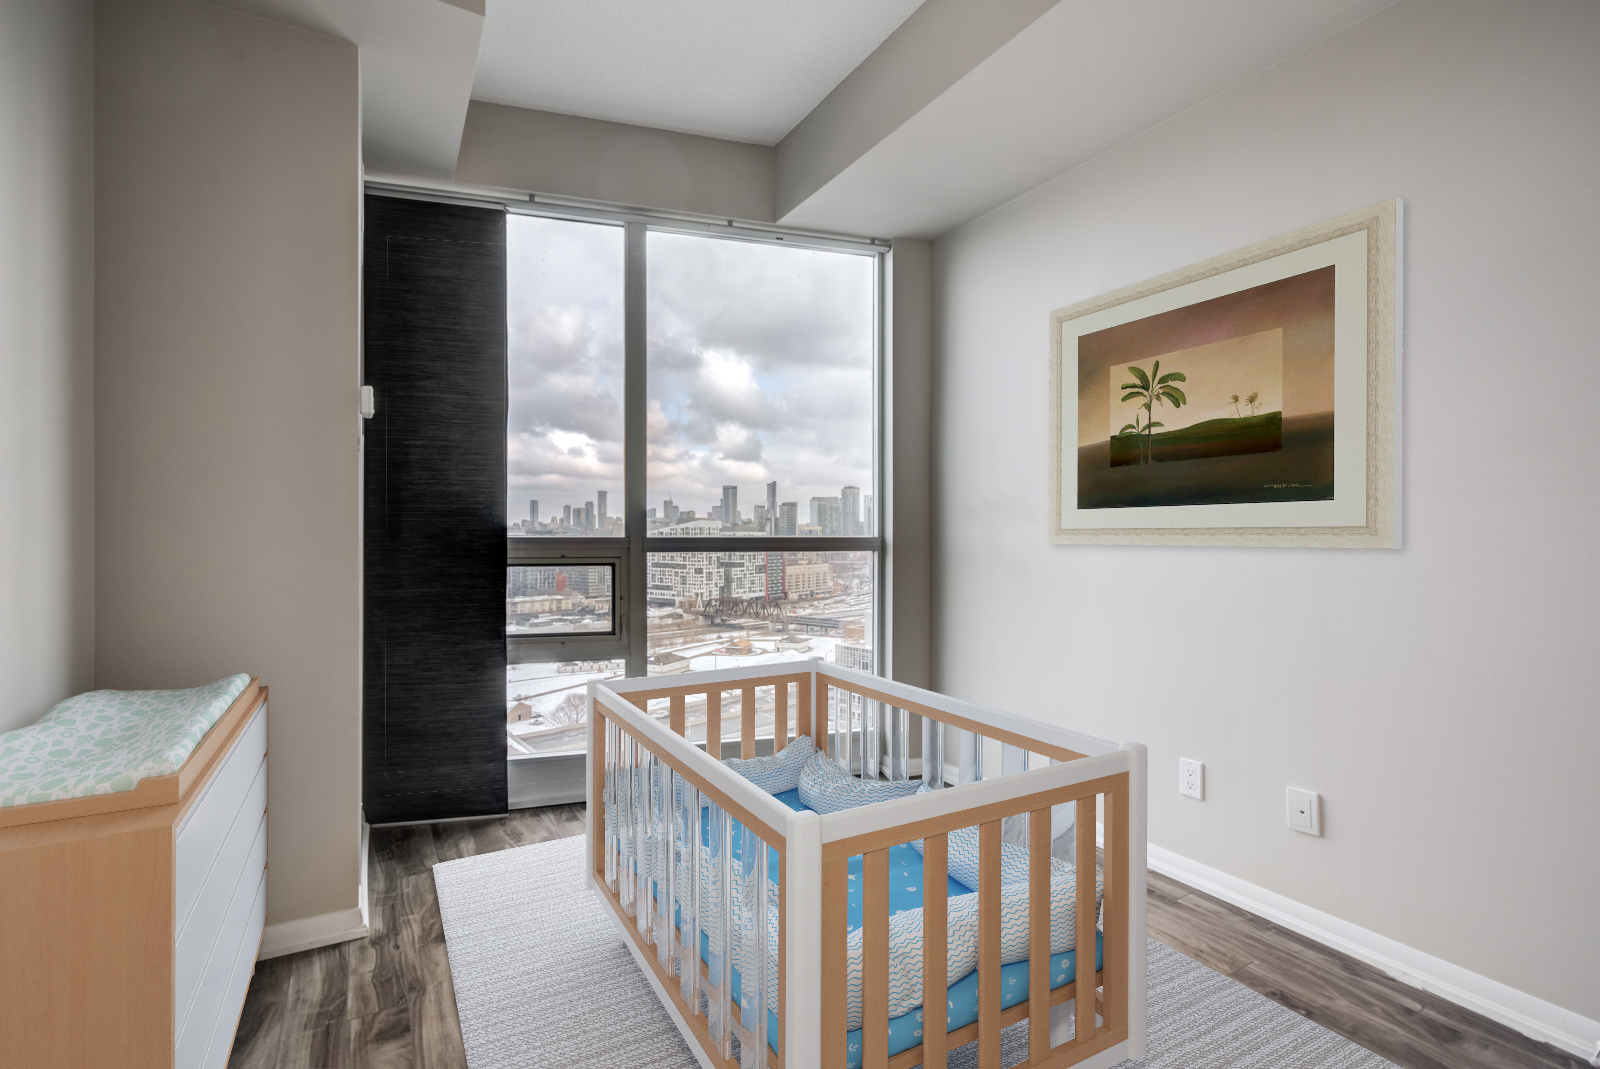 Nursery with 3D crib and painting at 215 Fort York Blvd #2310.